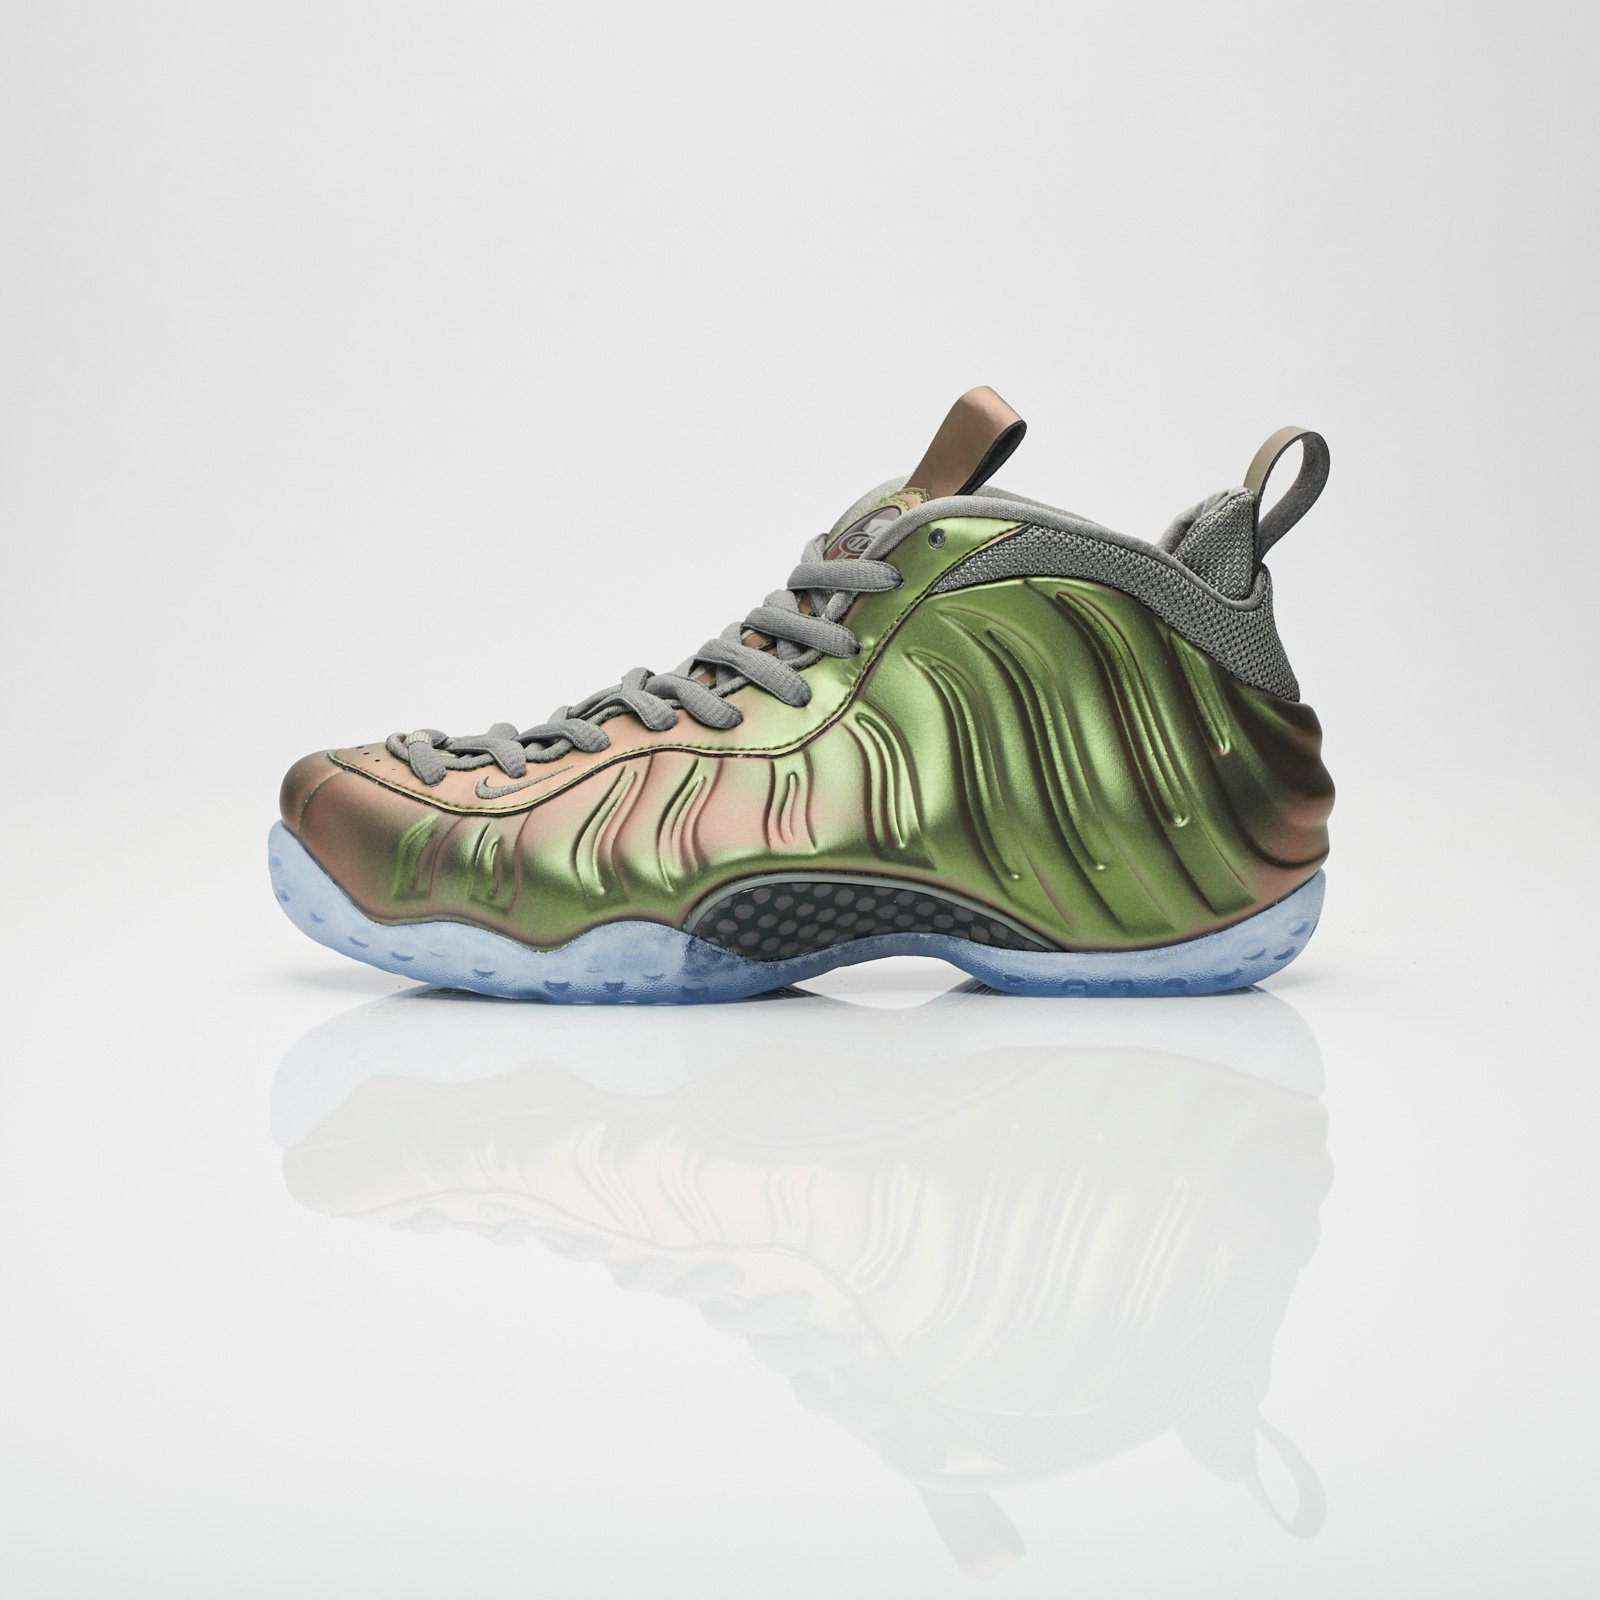 ab469dc9b90 Nike Wmns Air Foamposite One - Aa3963-001 - Sneakersnstuff ...